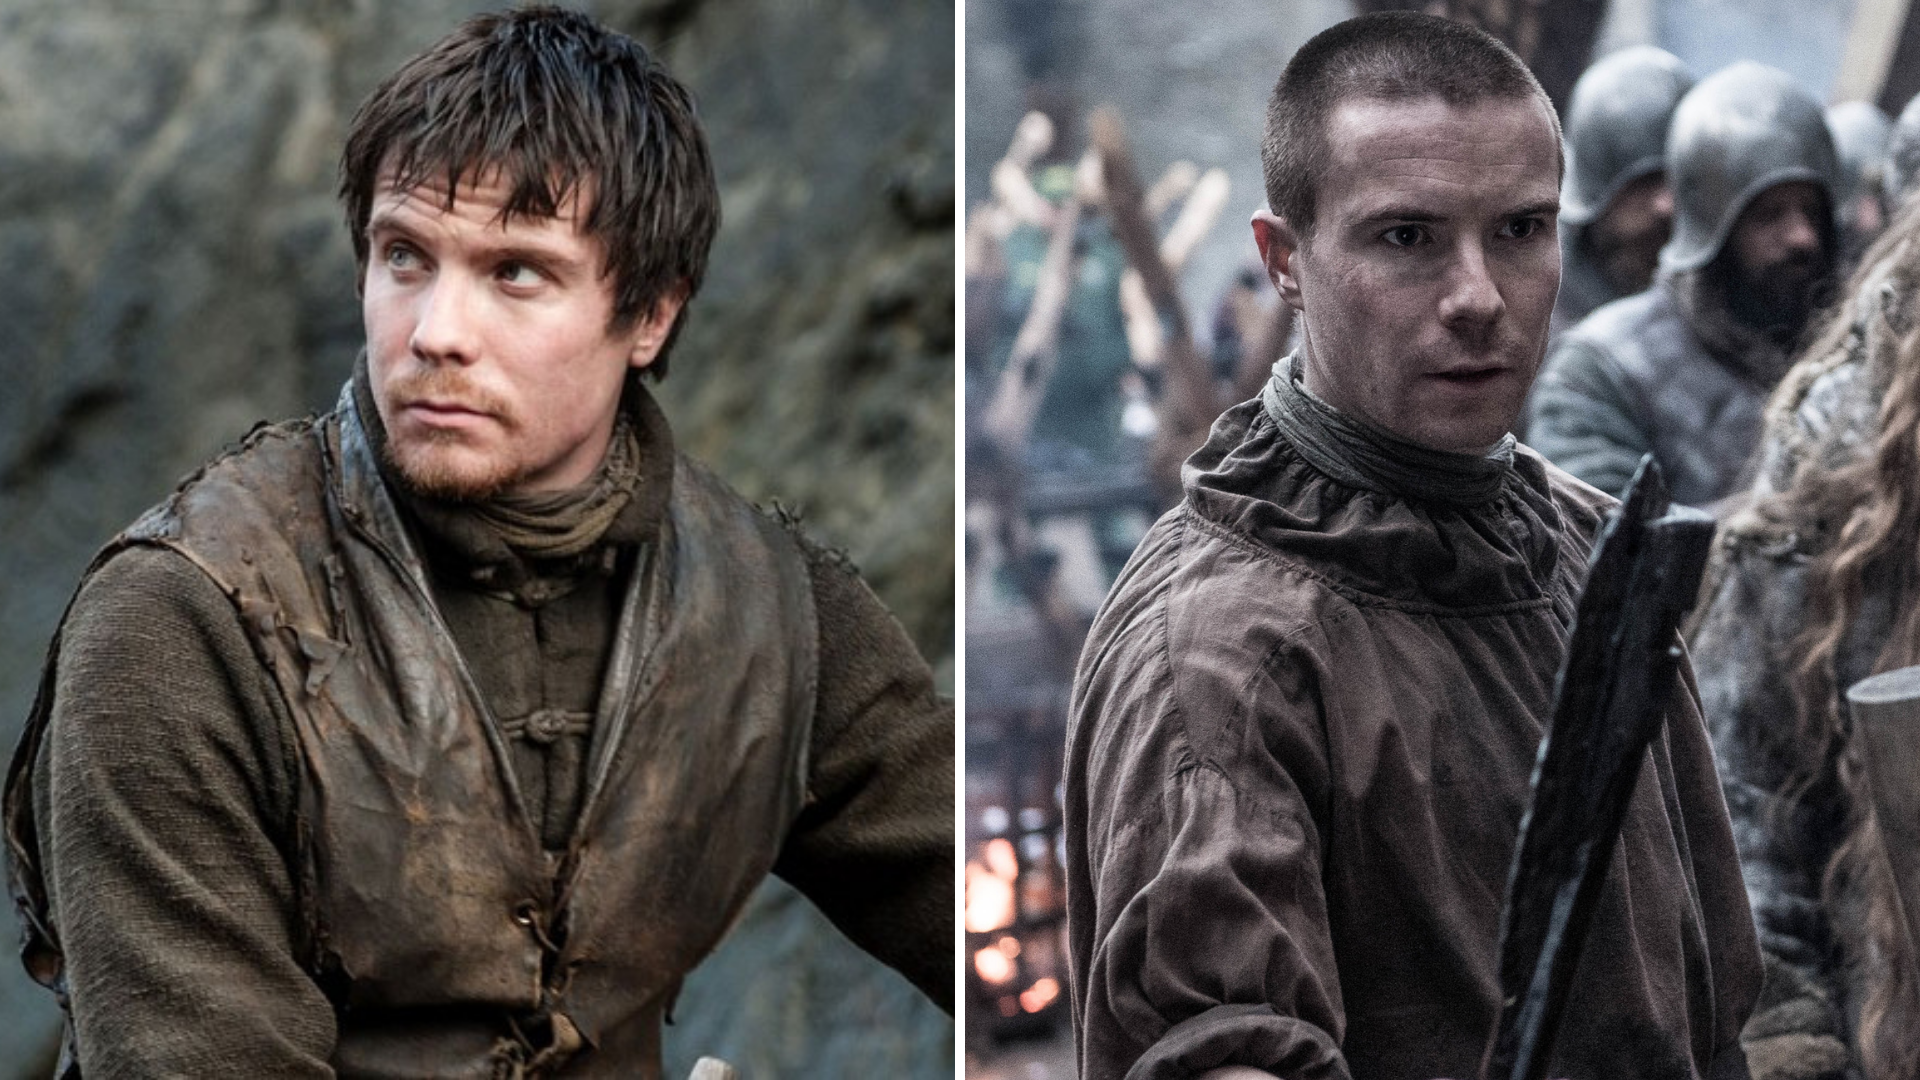 Game of Thrones - Gendry